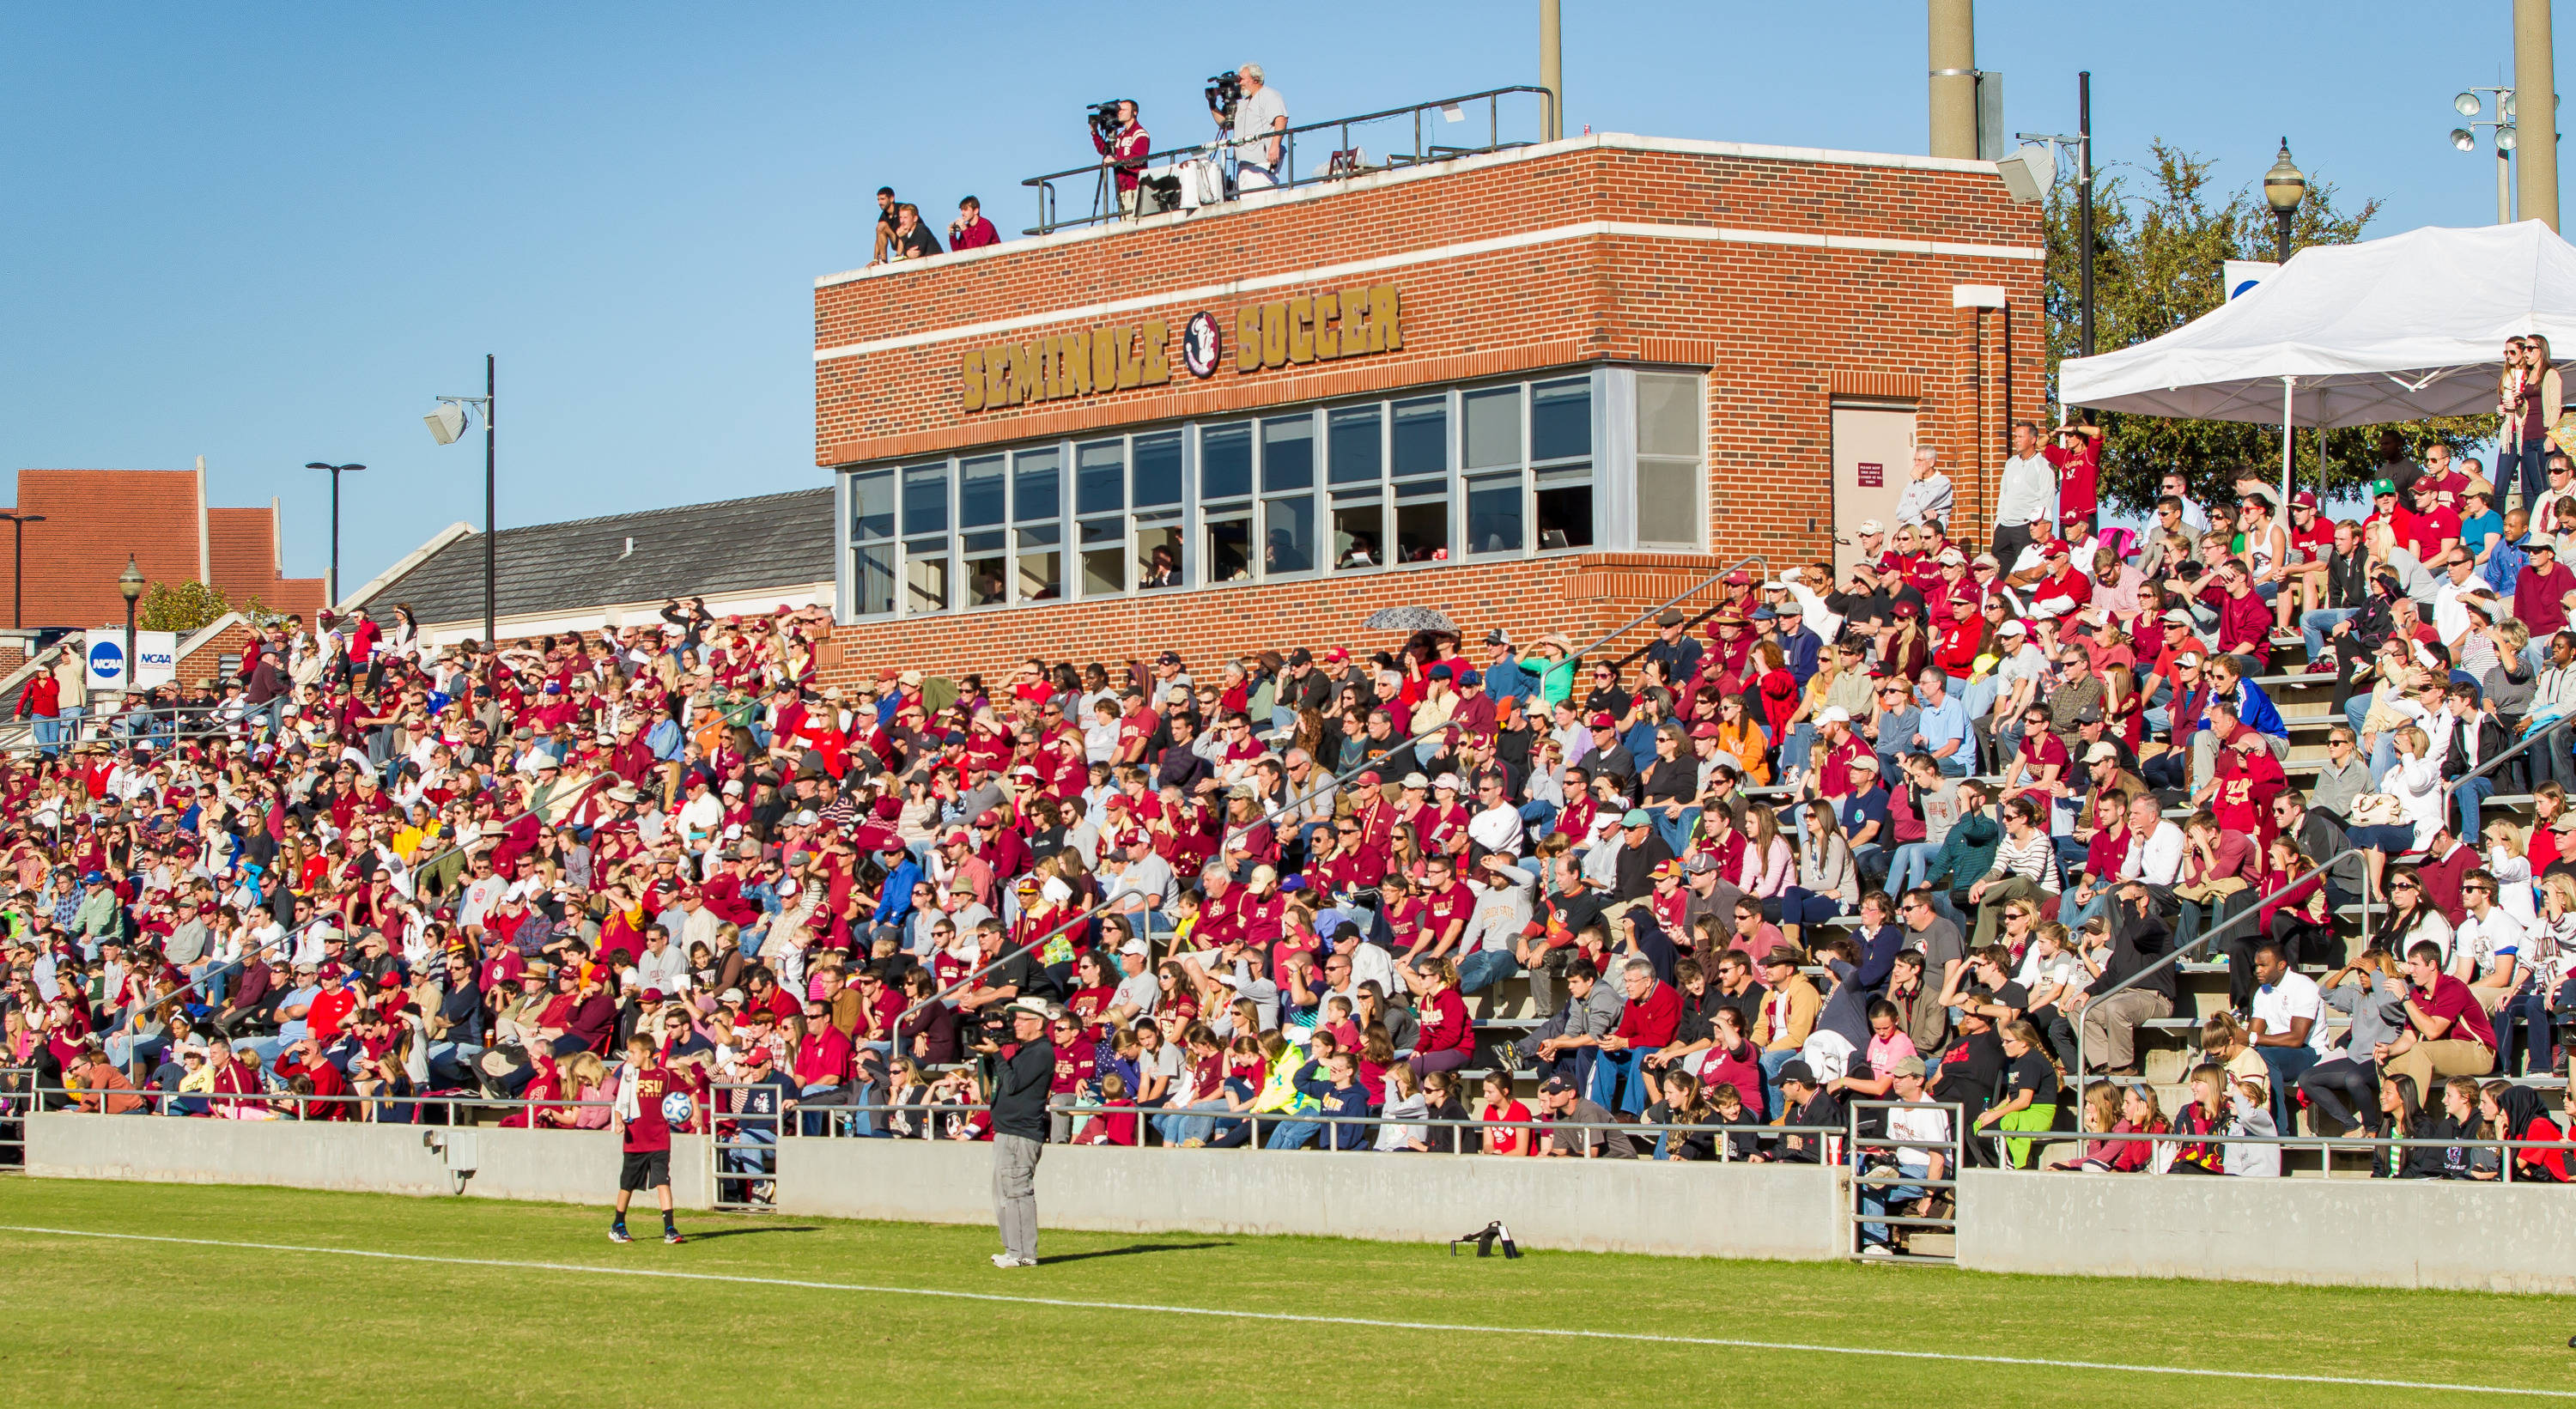 A full house at the Seminole Soccer Complex supported the Noles.